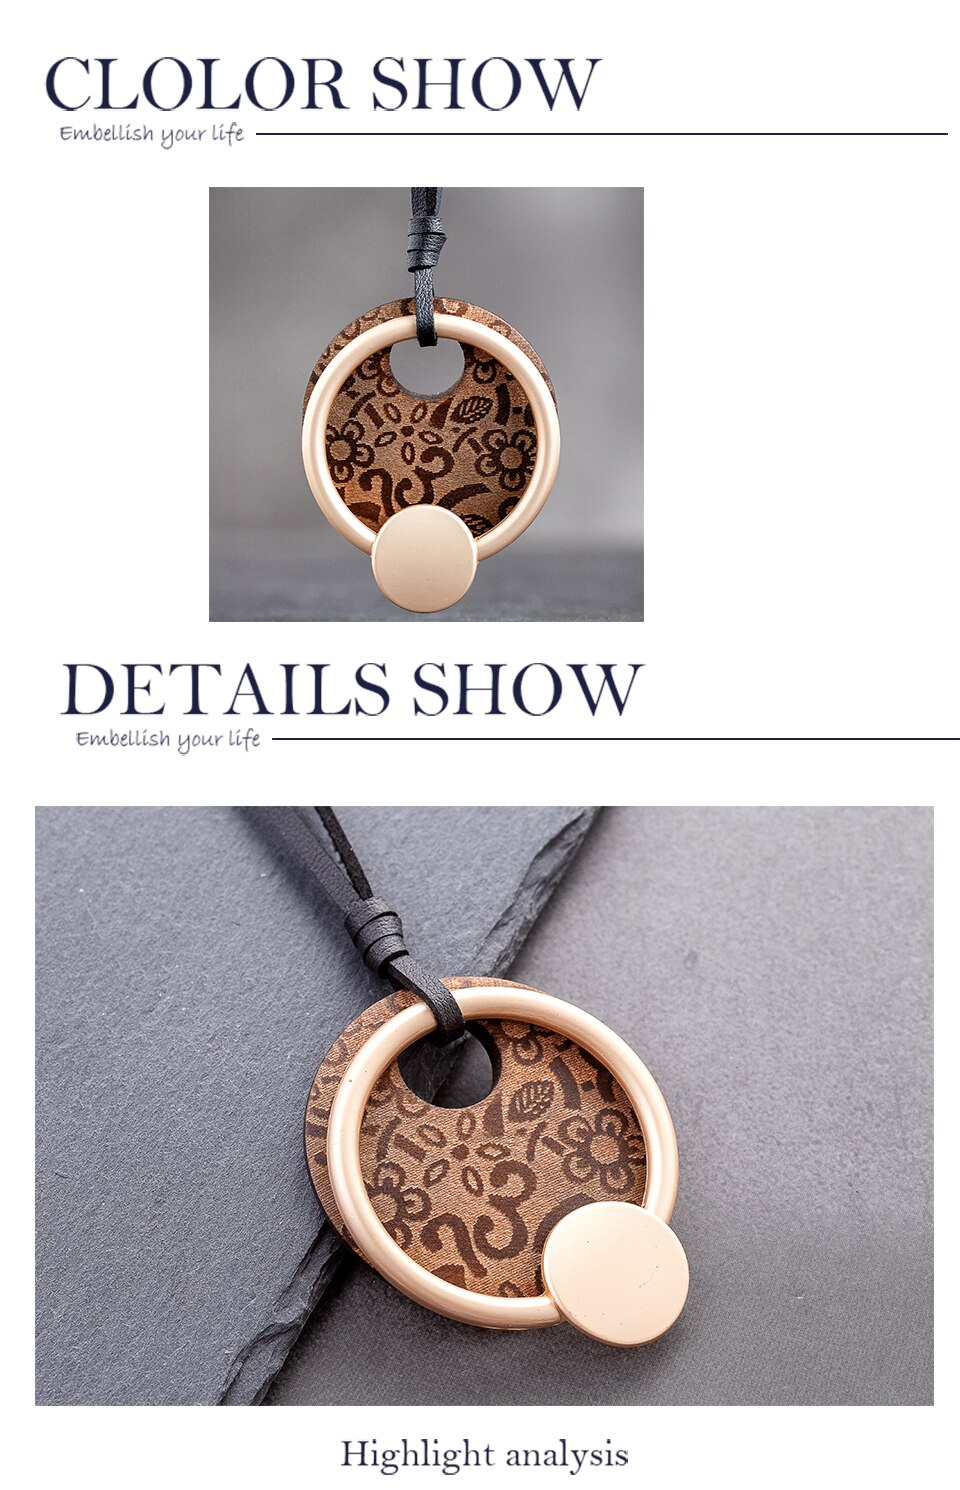 Round Wooden Fashion Women's Jewelry Accessories Cute Simple Long Pendants Necklaces Female Neck Suspension Decoration Gift 2020